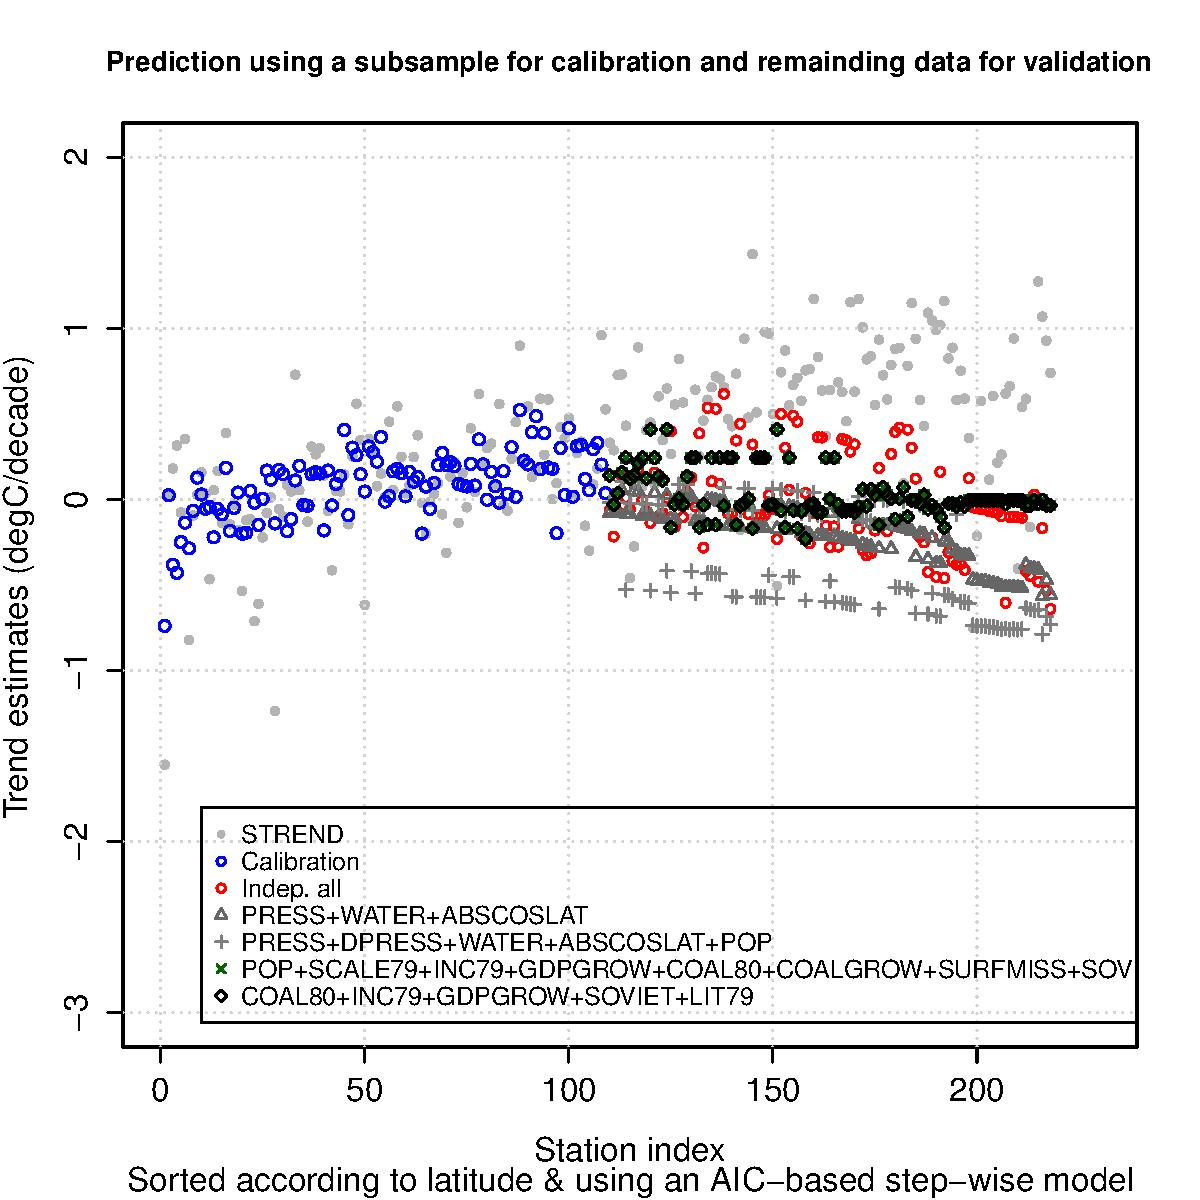 Results of regression analyses with different models using data from stations within the latitude range 75.5° S to 35.2°N to calibrate the model and stations in the latitude range 35.3° to 80.0° N and corresponding depending variables for prediction and evaluation. The unit along the y-axis is °C decade–1